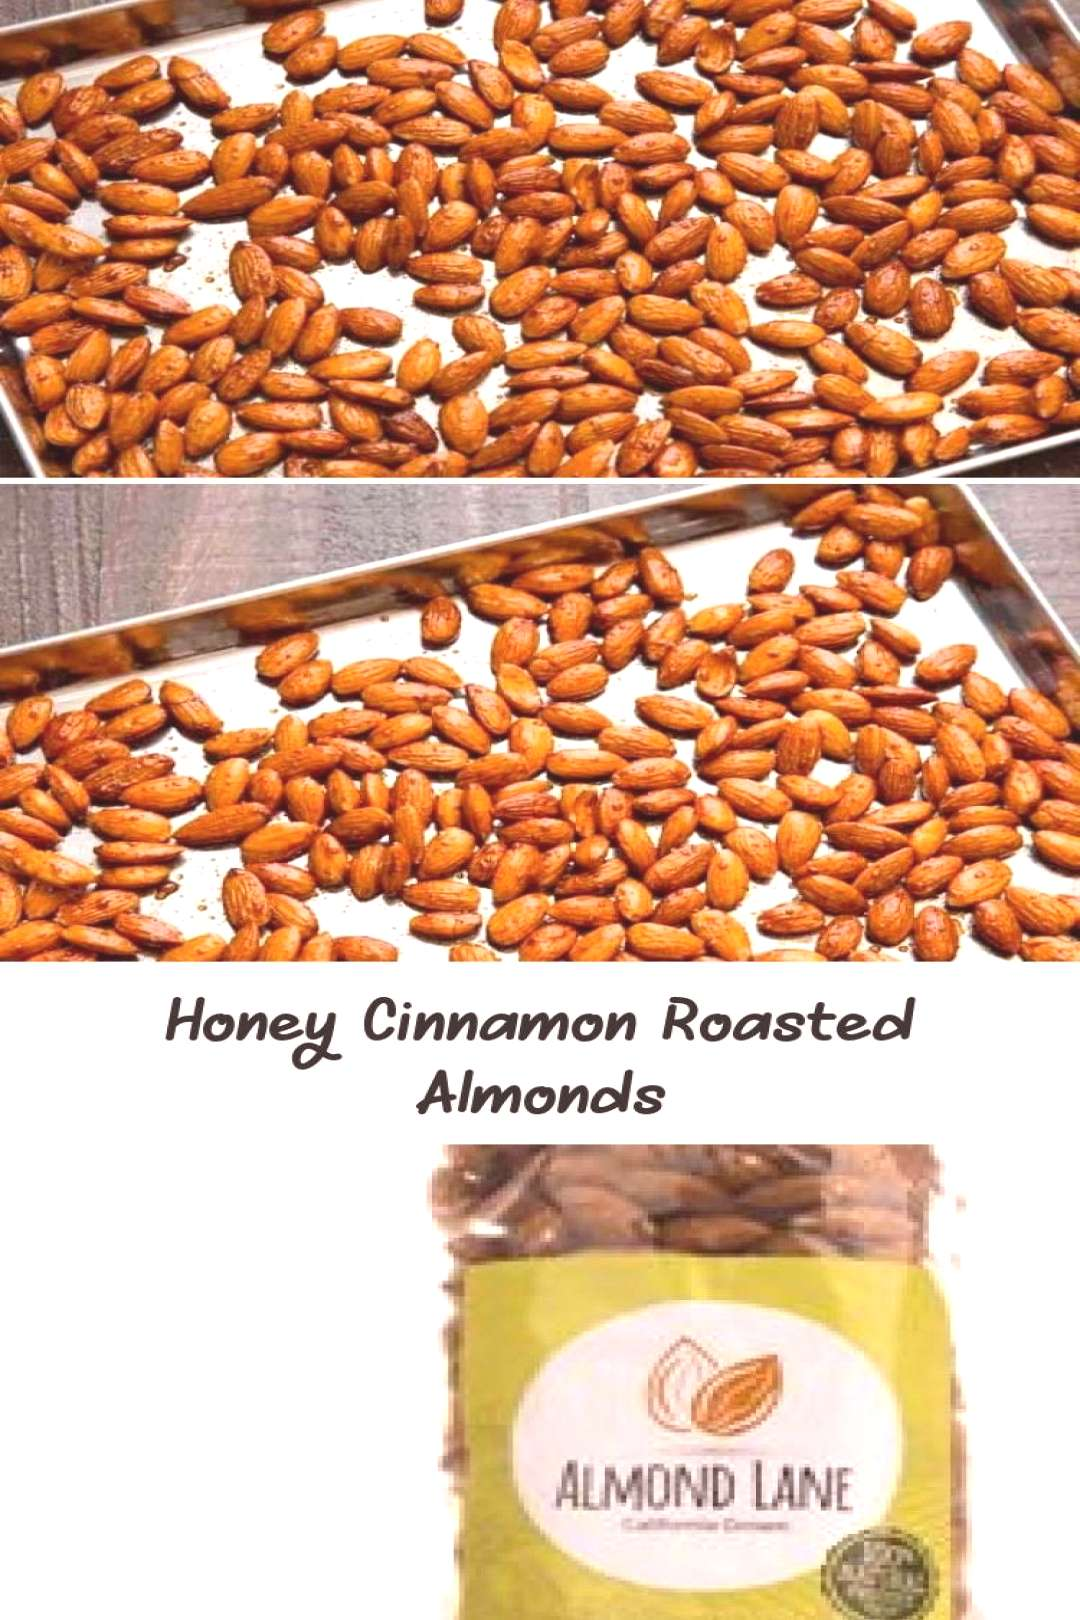 Honey and cinnamon roasted almonds are an easy healthy snack to make from plain almonds. Top them o